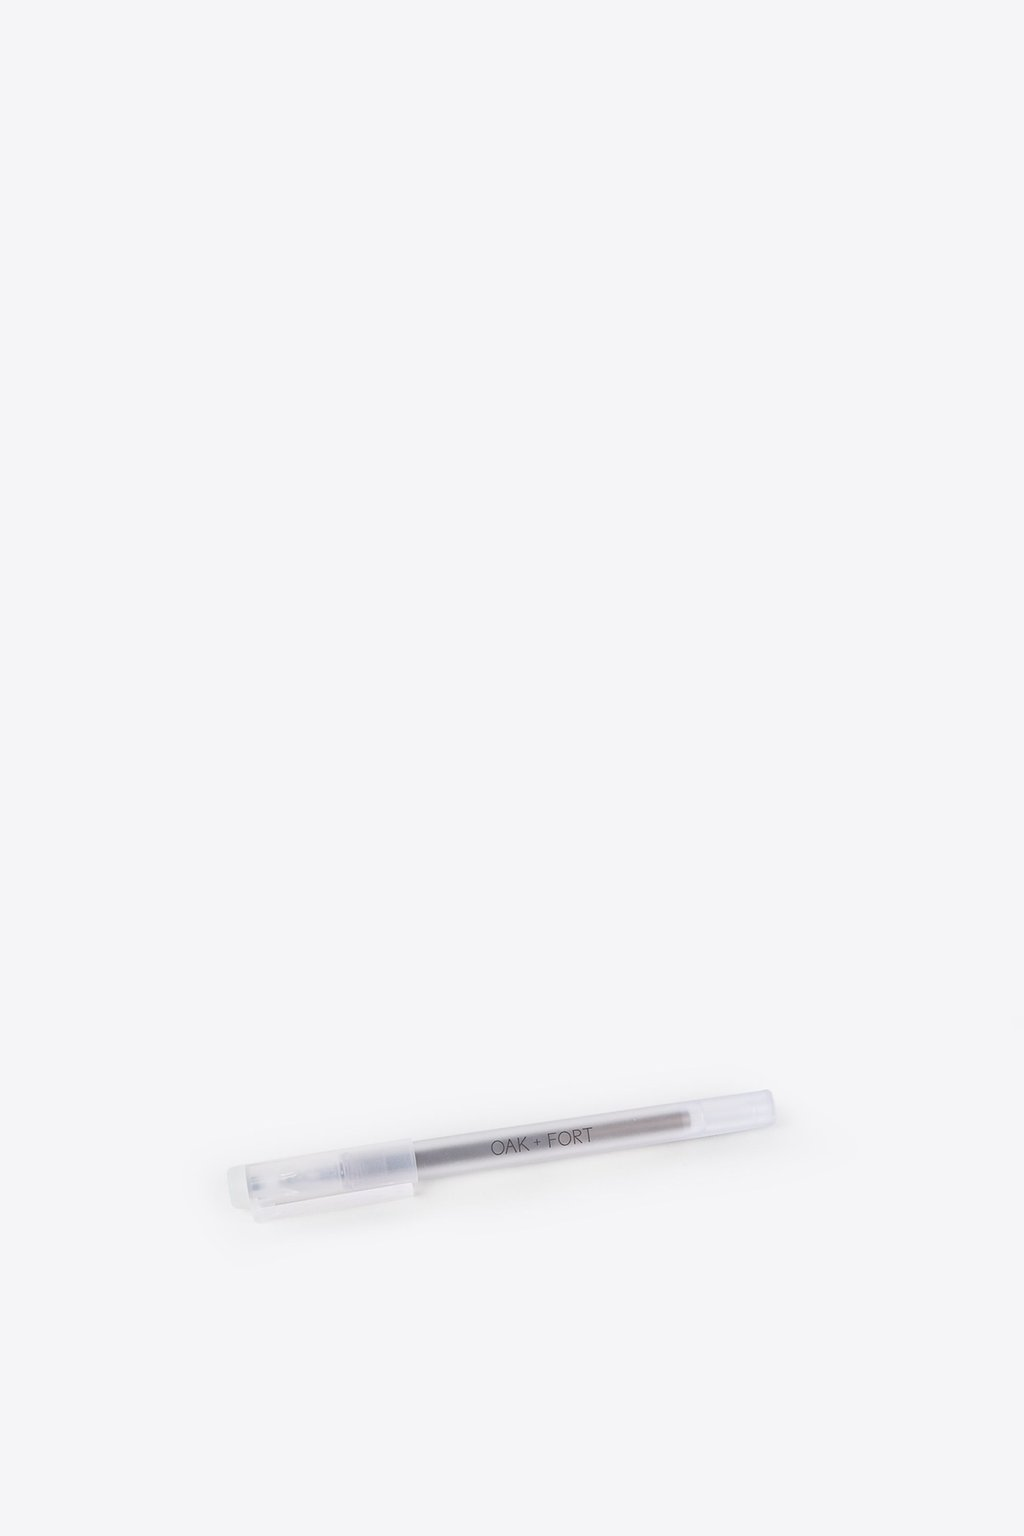 Erasable Pen 1861 Black 2